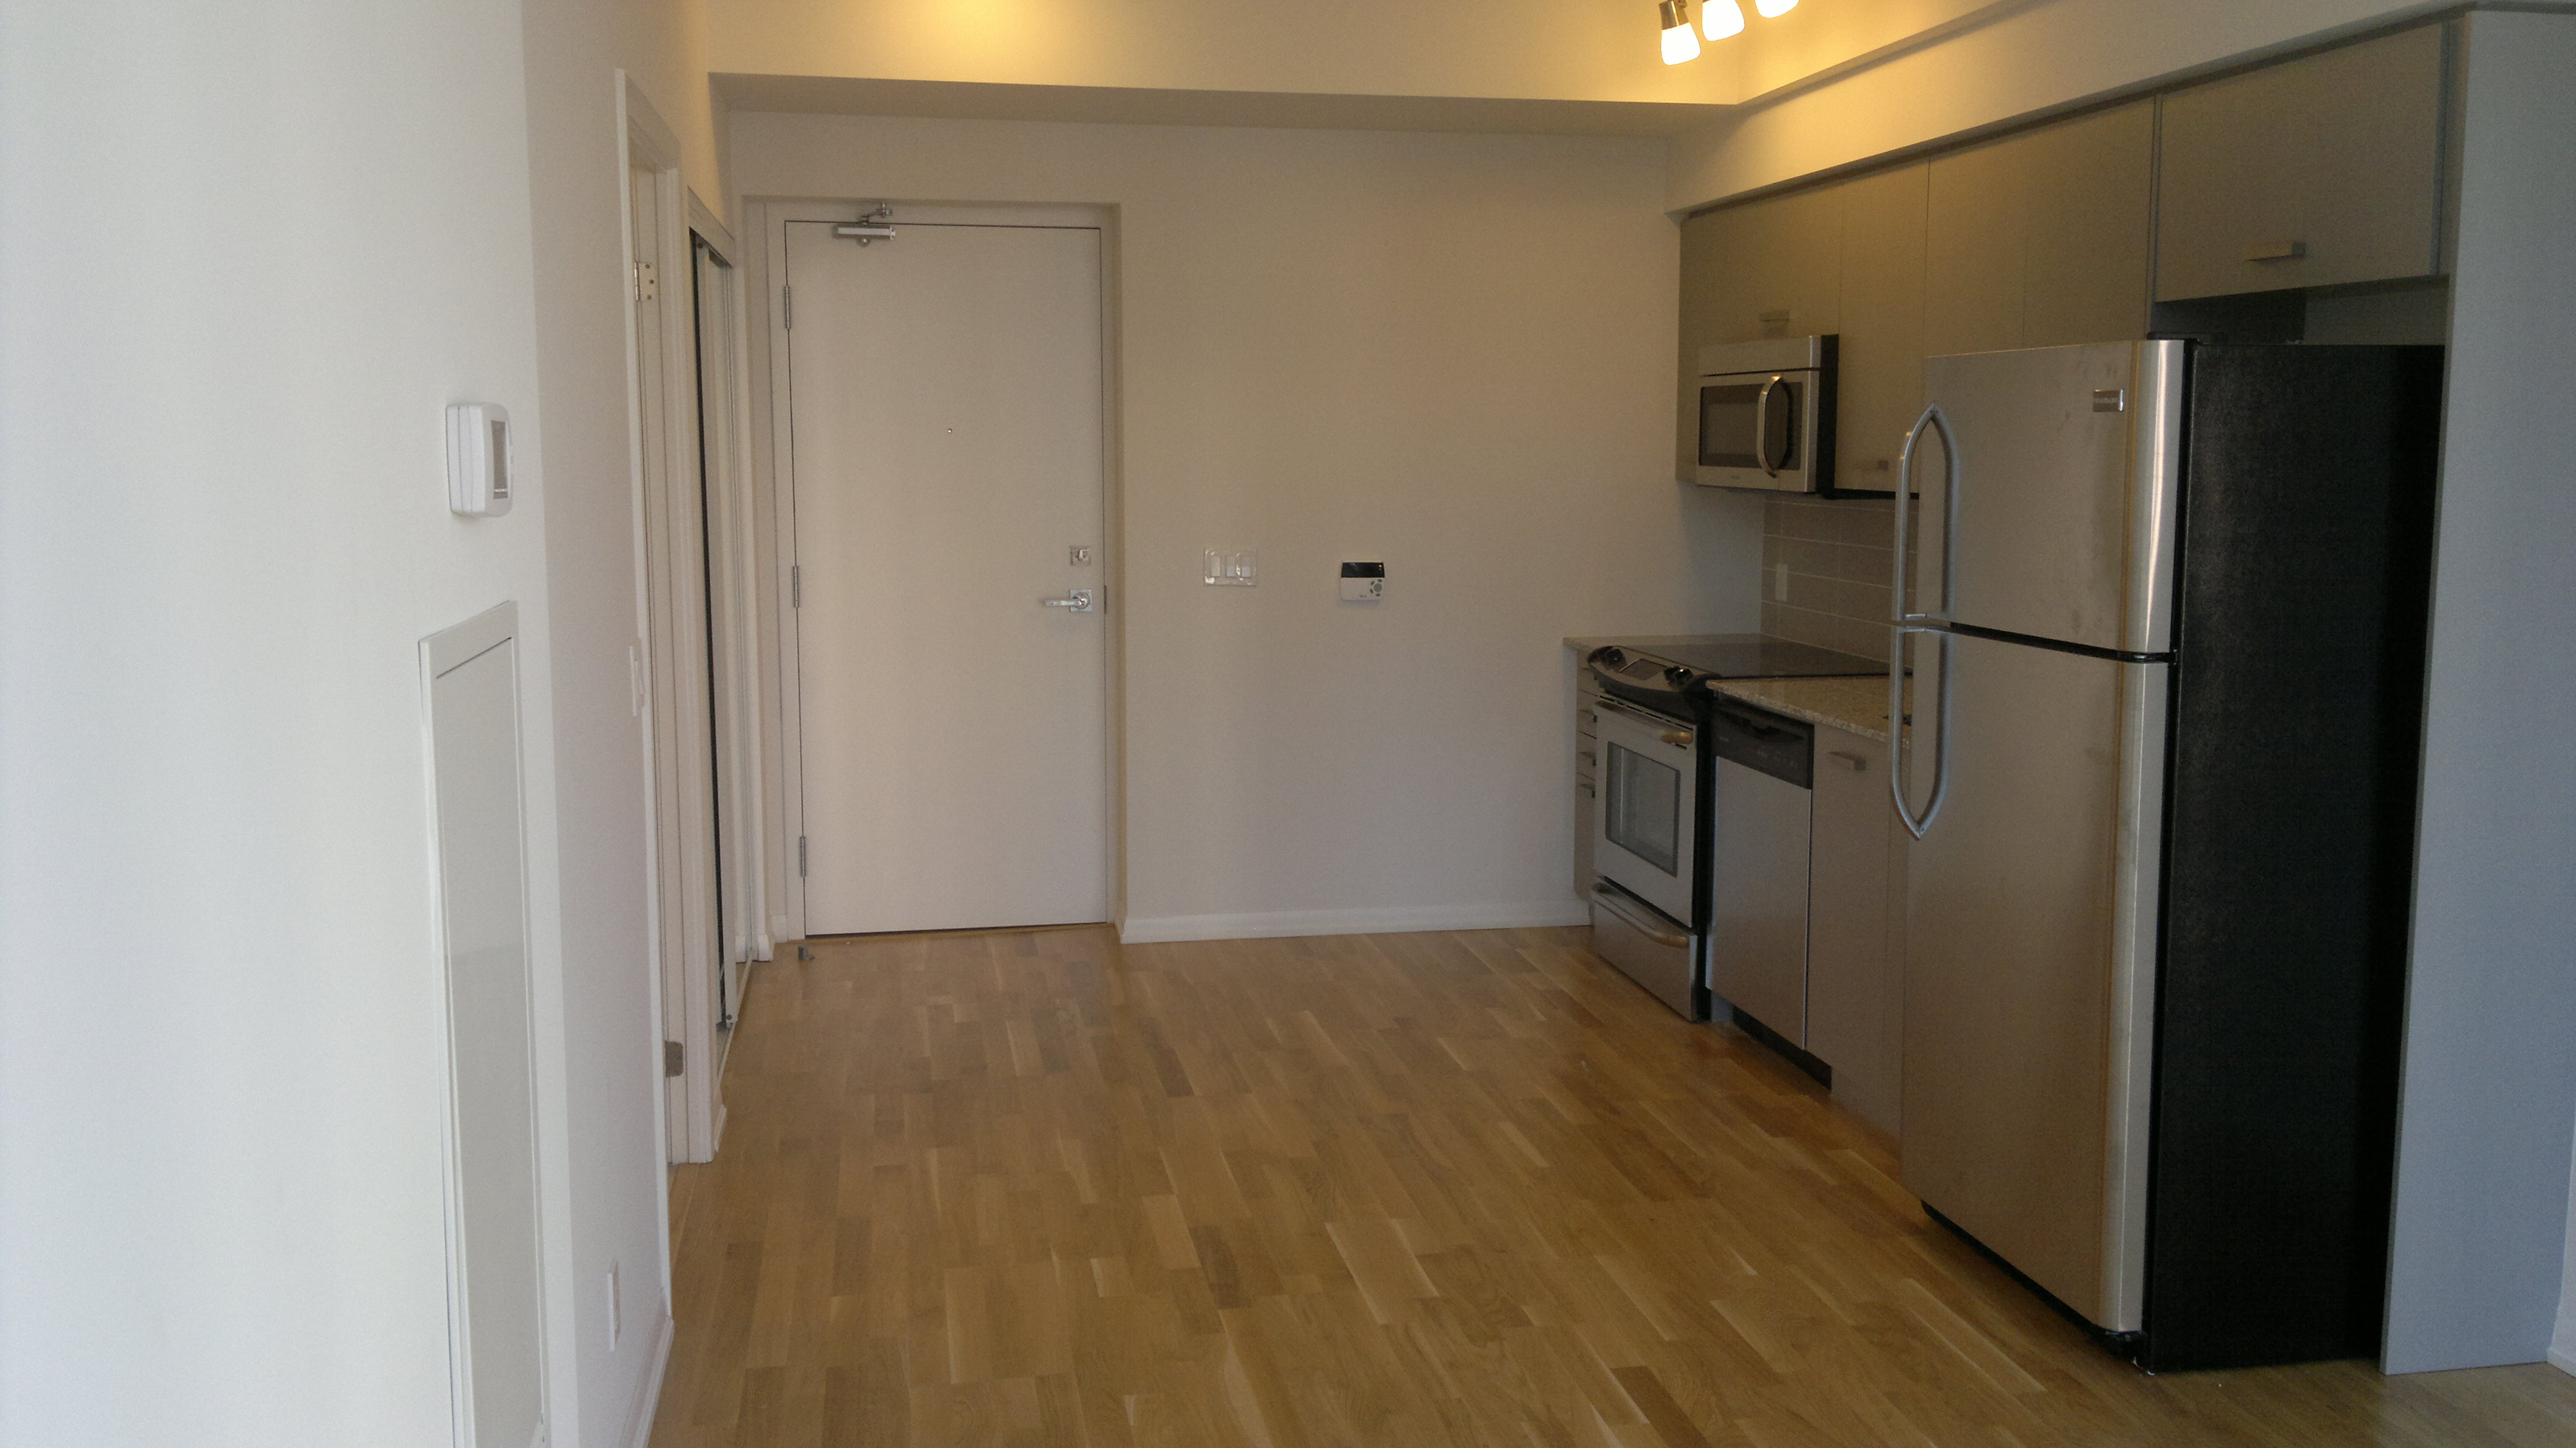 condo assignments for sale Condo assignment sale waterfront 3 bedroom 25 bathroom + 2 parking $1,698,000 offers are welcome 10 york st condo assignmentalso assignments sale in: me living, downtown, treviso iii, north york, fairview mall, midtown we are specialized in condo assignments sales.